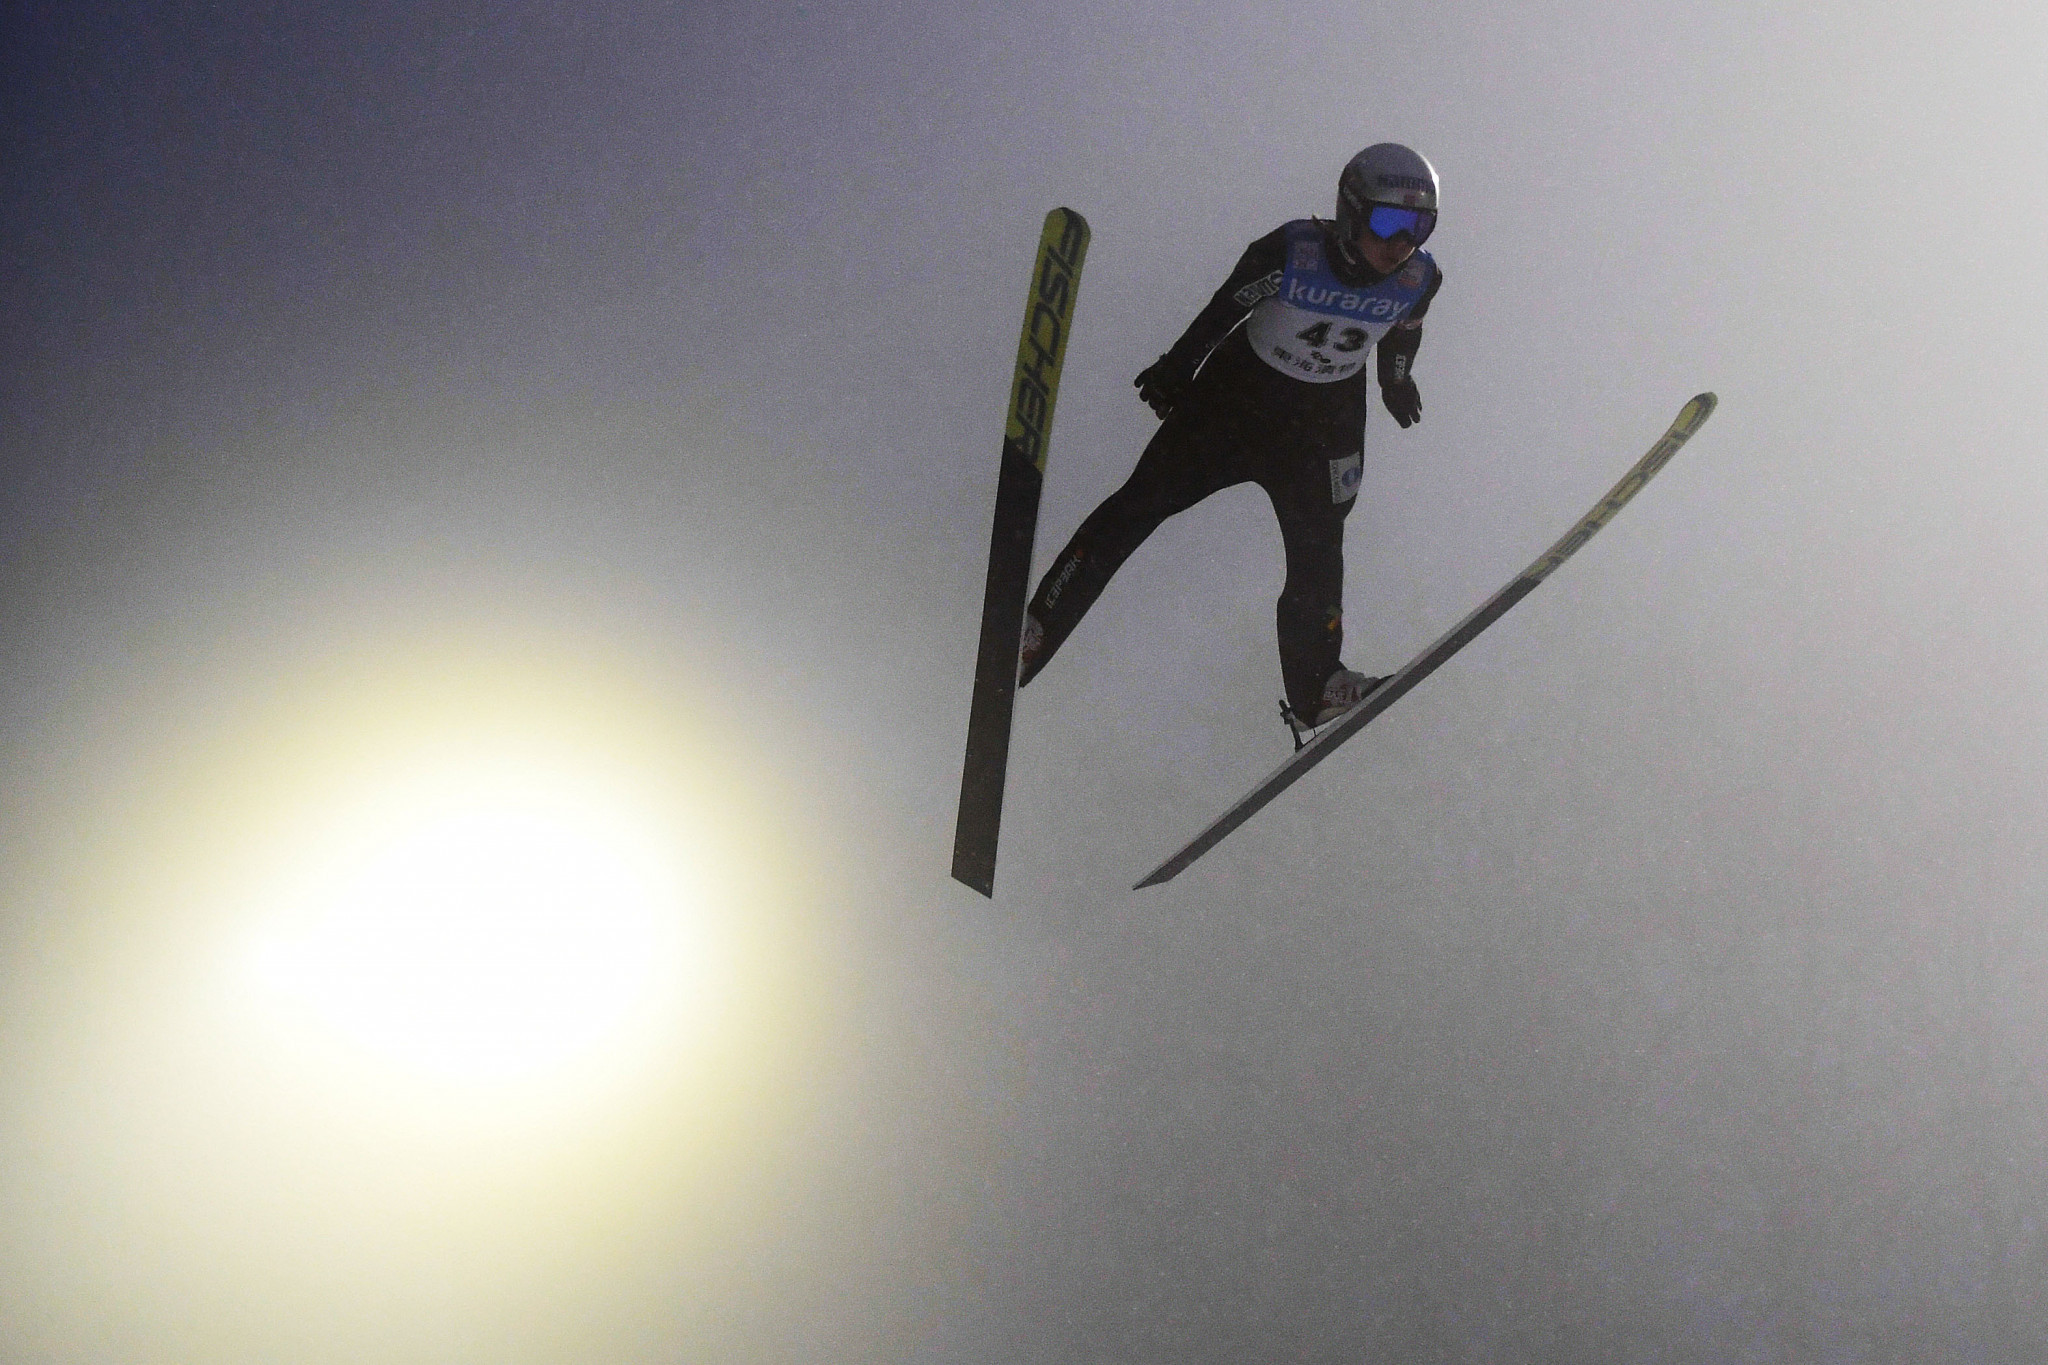 Maren Lundby topped qualifying at the women's event in Hizenbach ©Getty Images